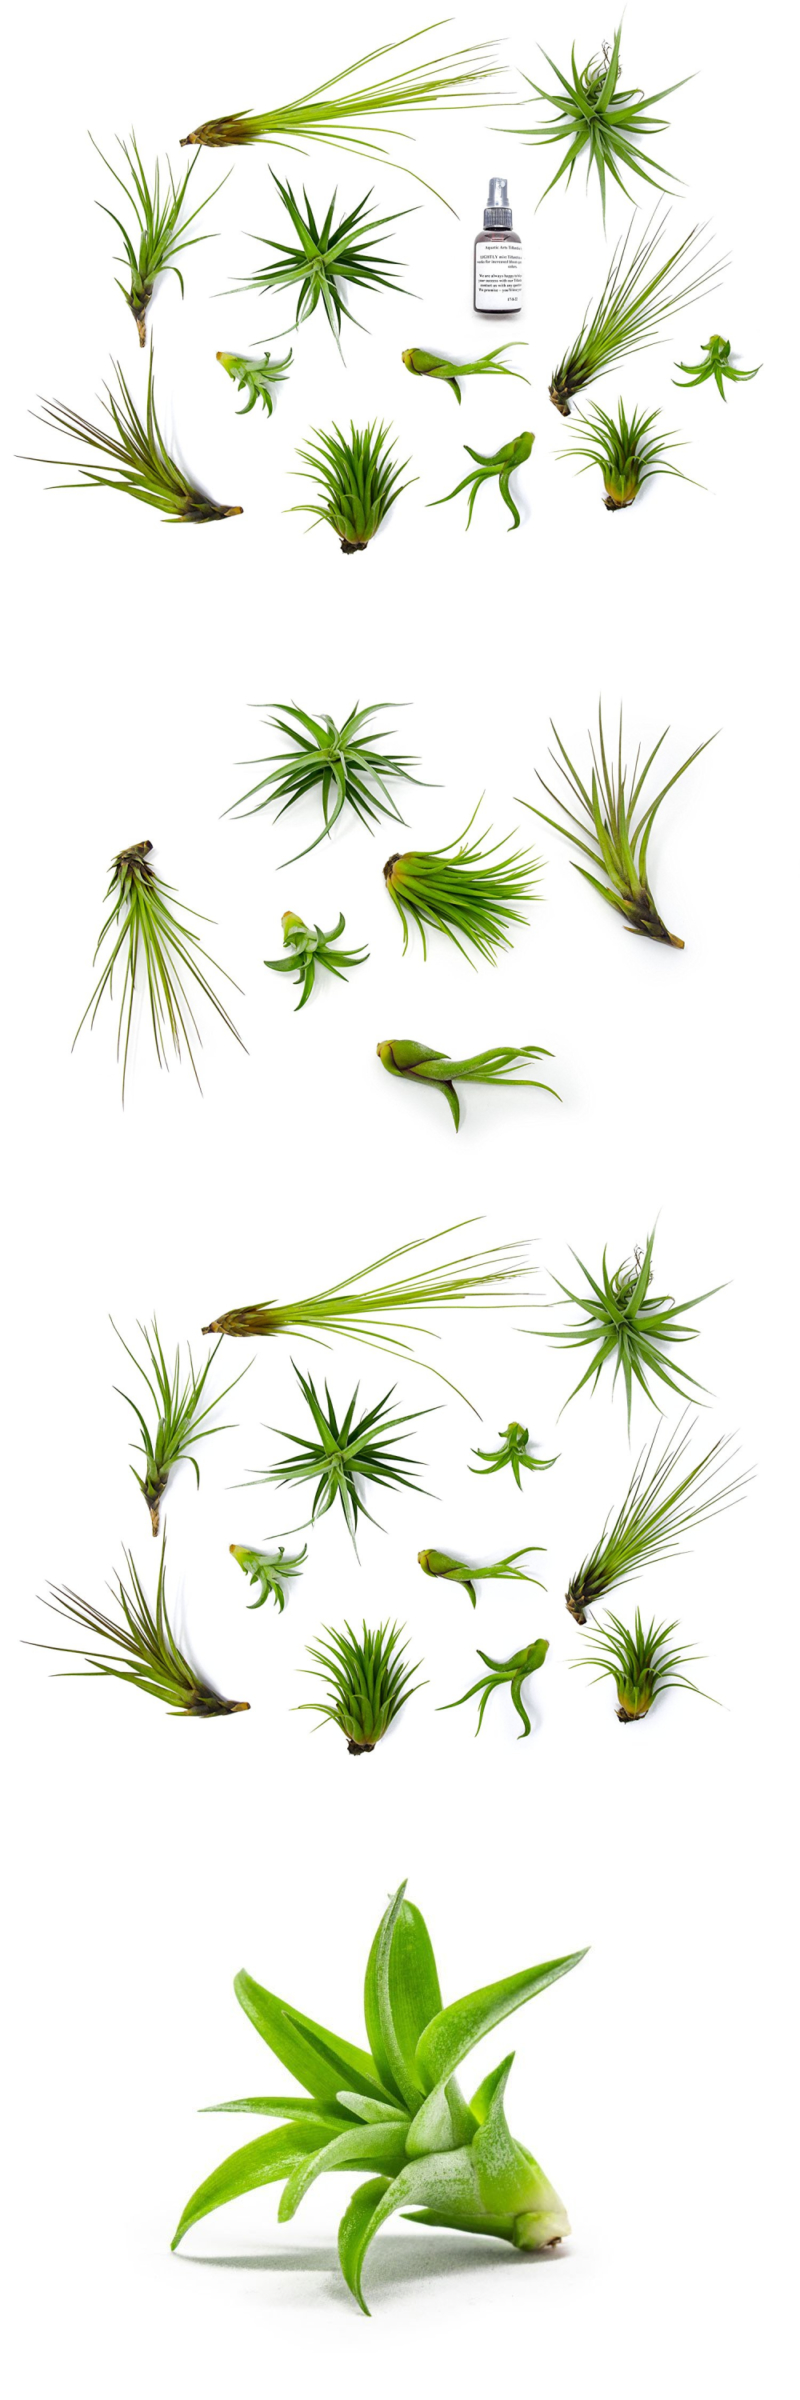 Live plants air plant terrarium kit tillandsia variety